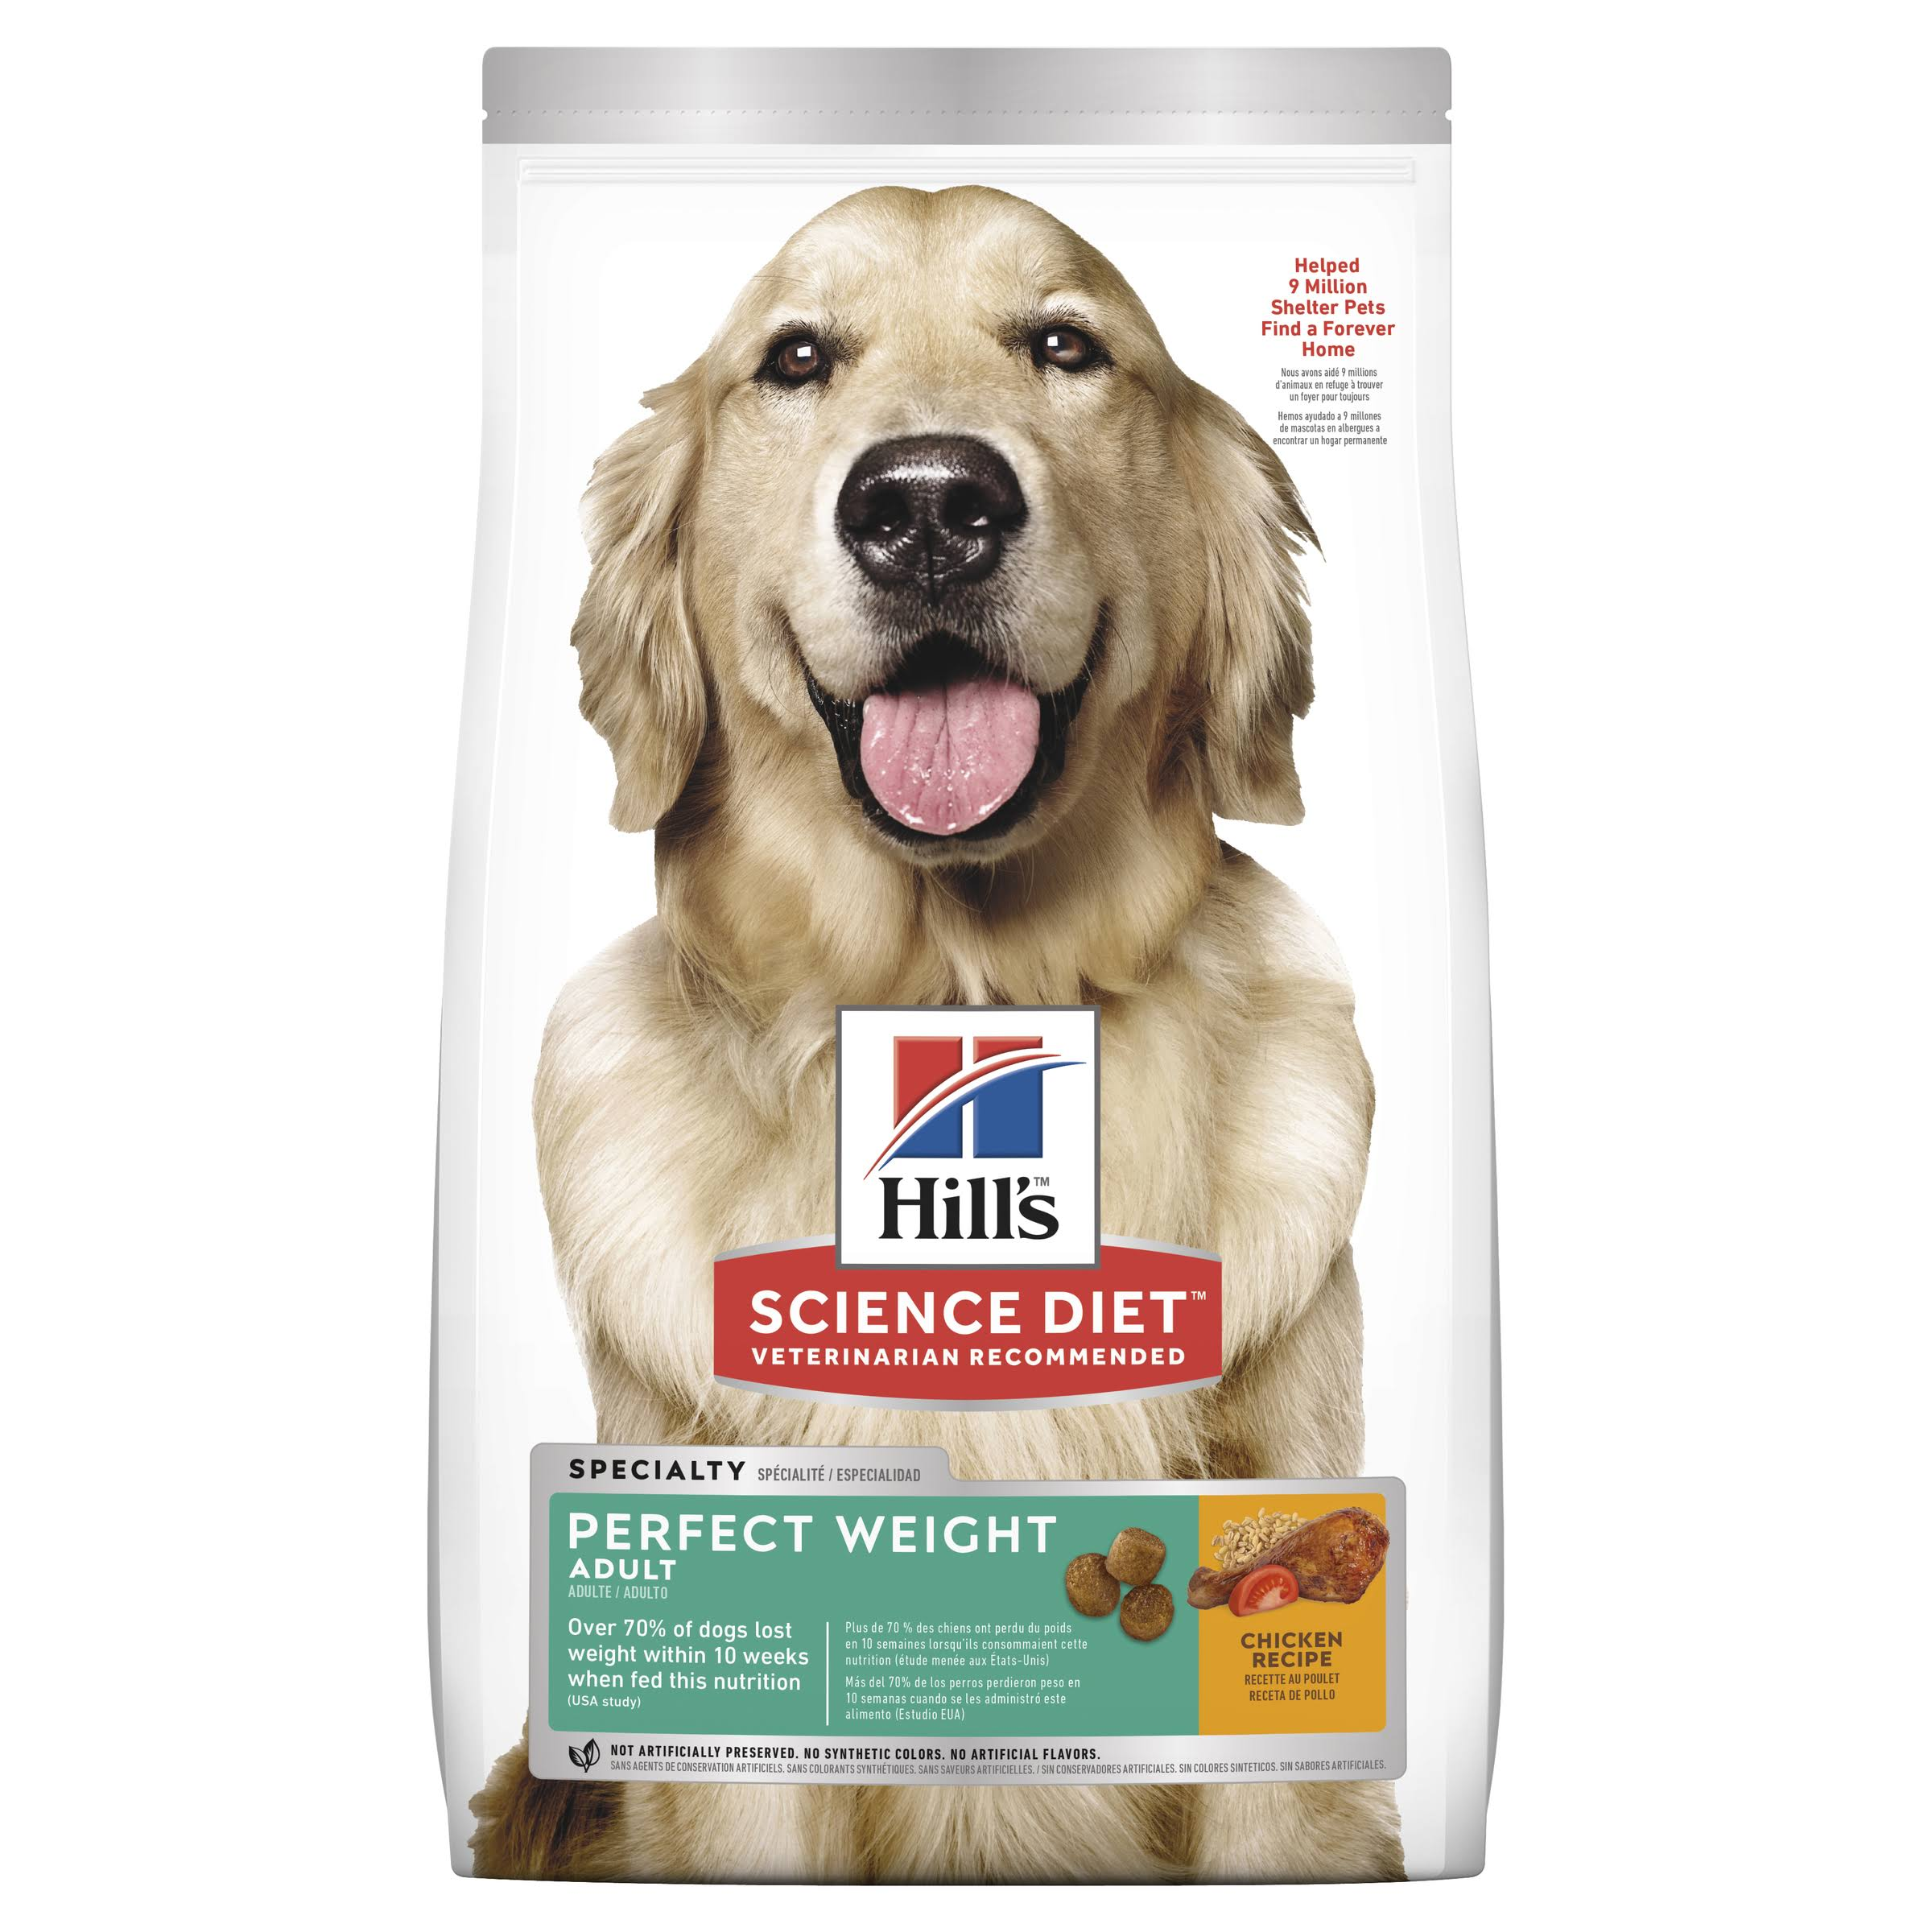 Hill's Science Diet Adult Perfect Weight Dry Dog Food - Chicken Recipe, 28.5lbs